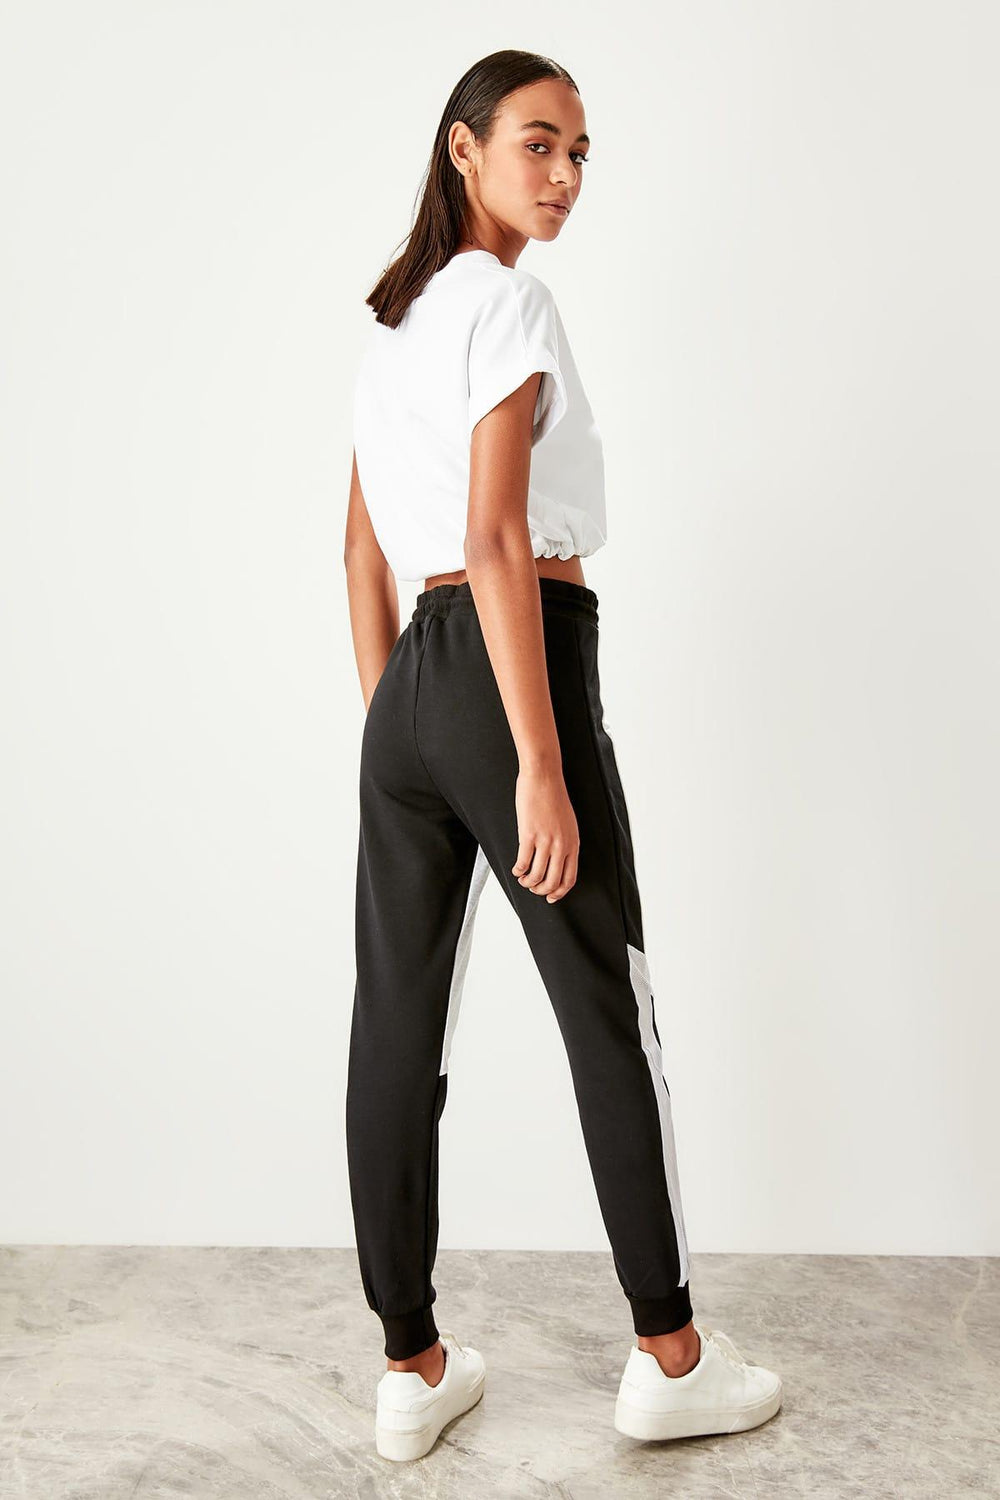 Miss Zut Miss Zut Black With Color Block Knit Sweatpants Miss Zut &CO